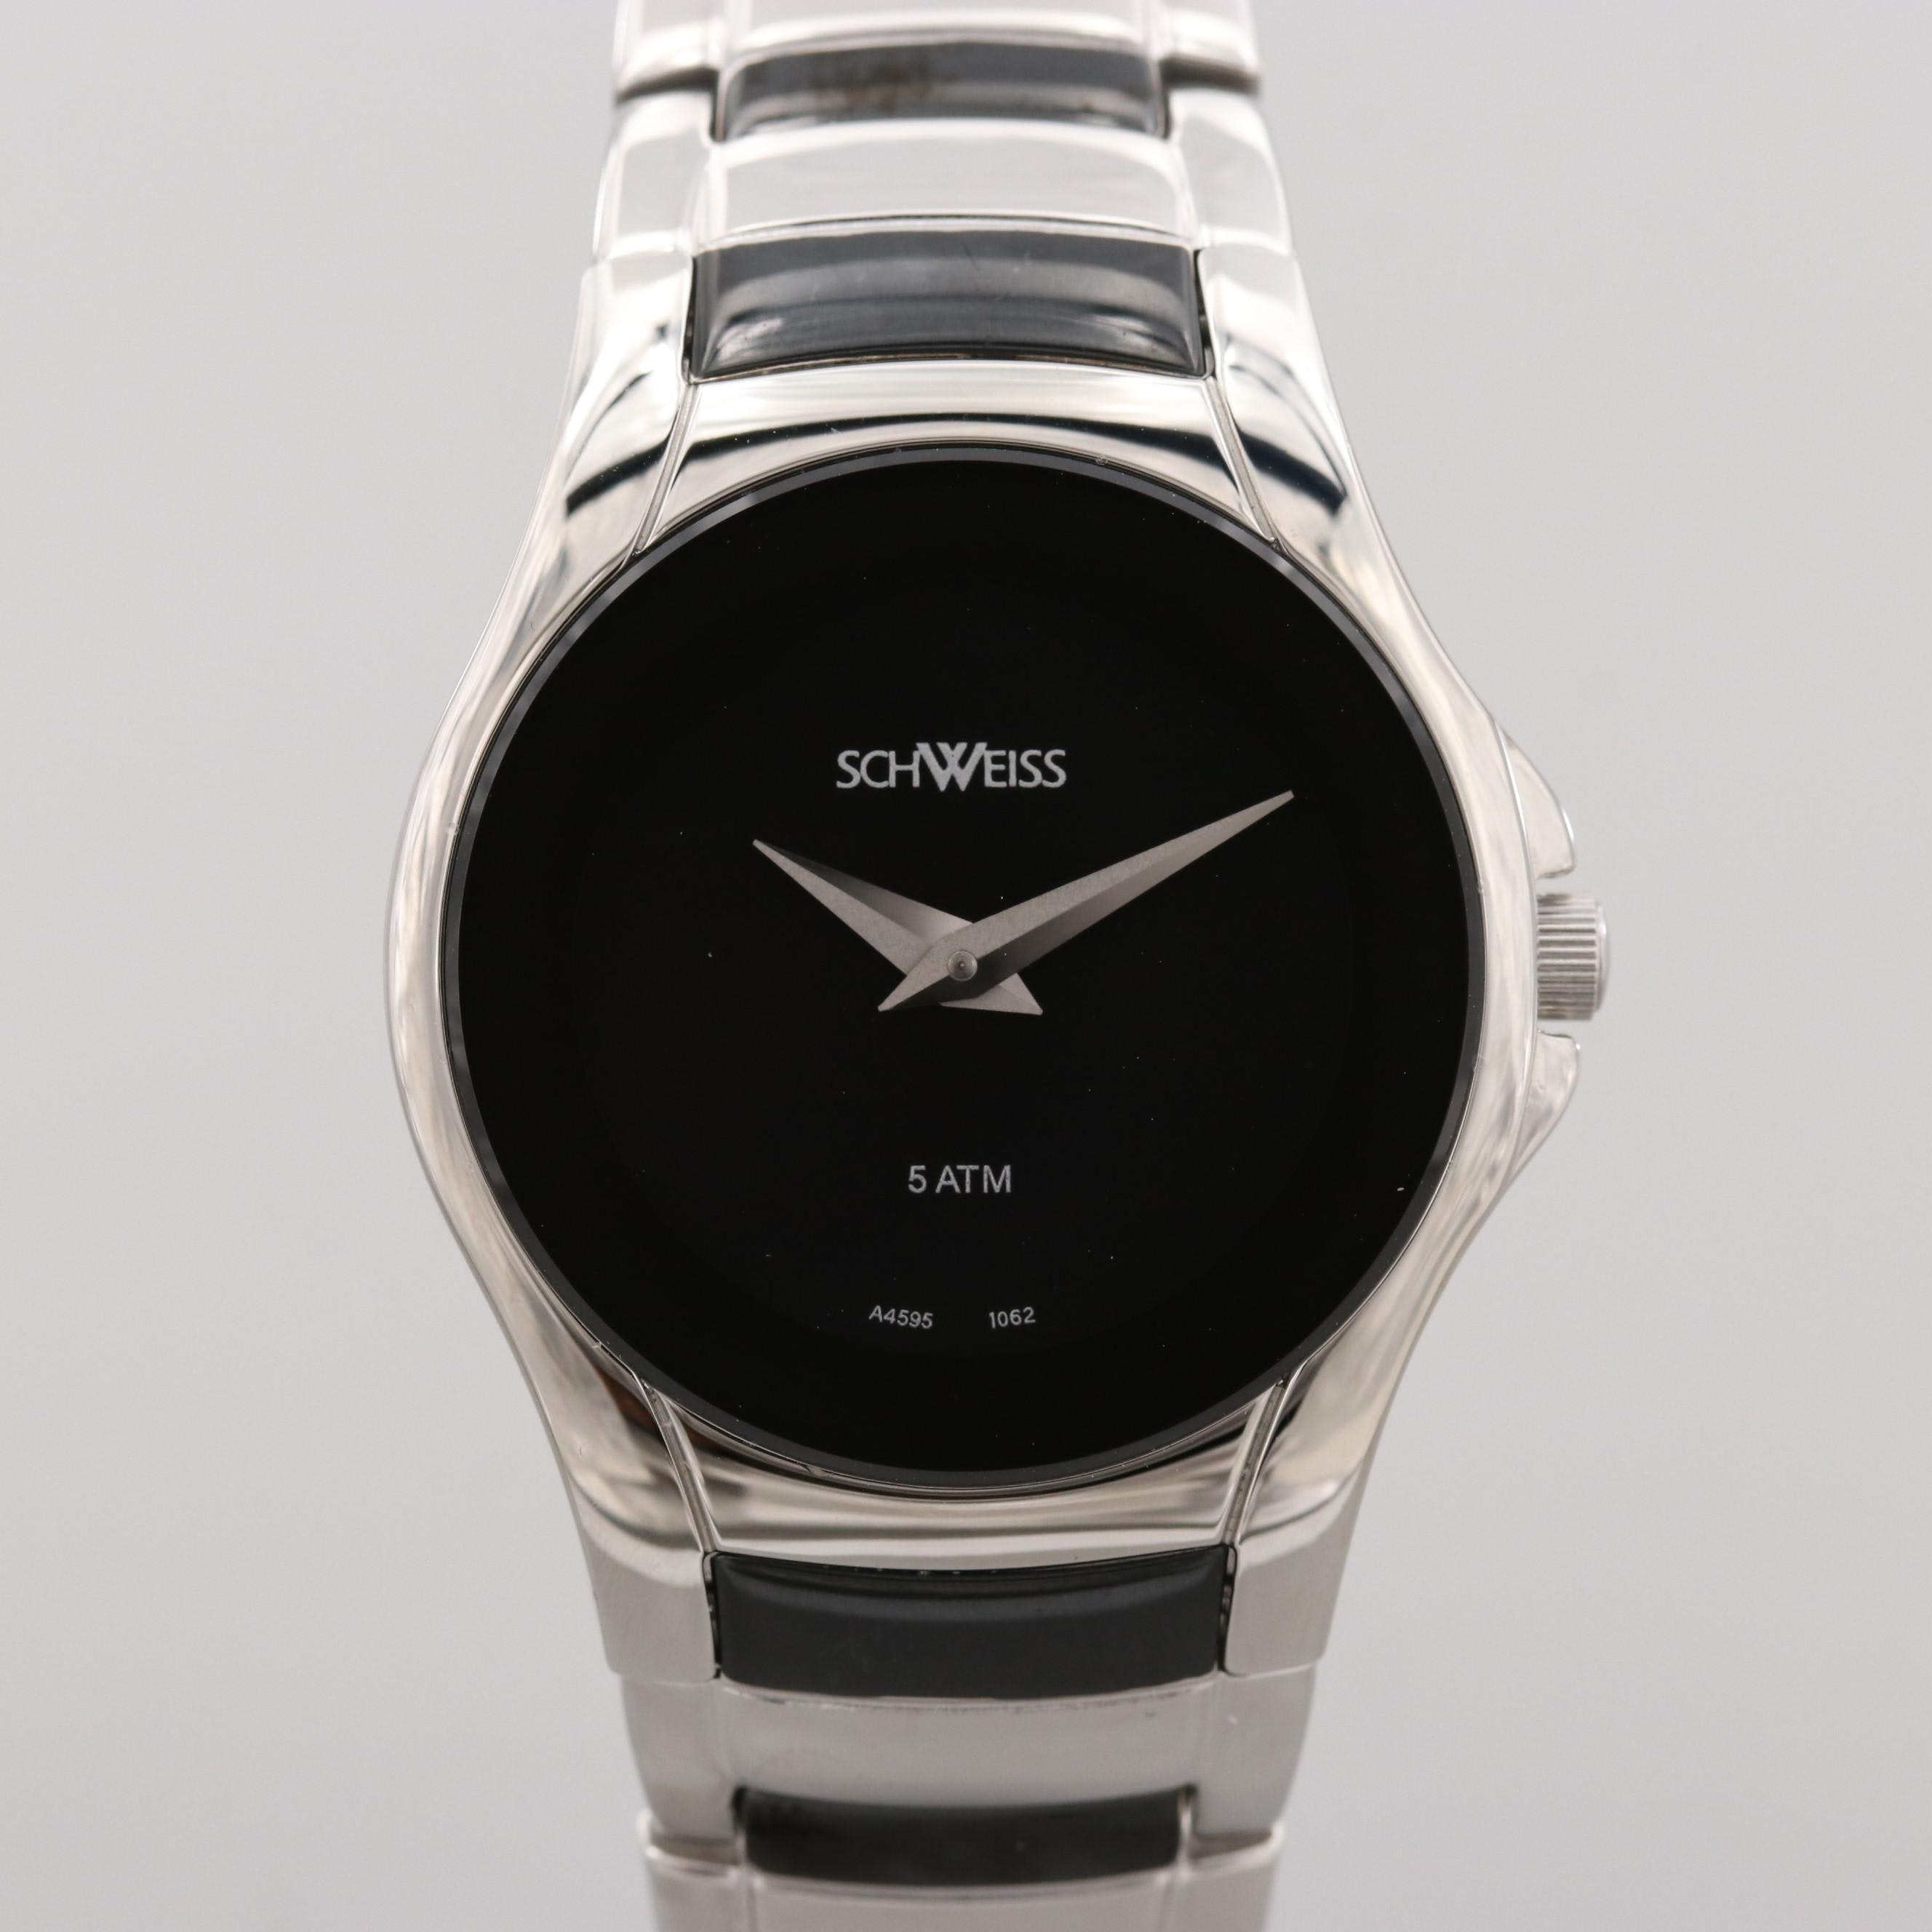 Schweiss Swiss Stainless Steel Quartz Wristwatch With a Black Dial